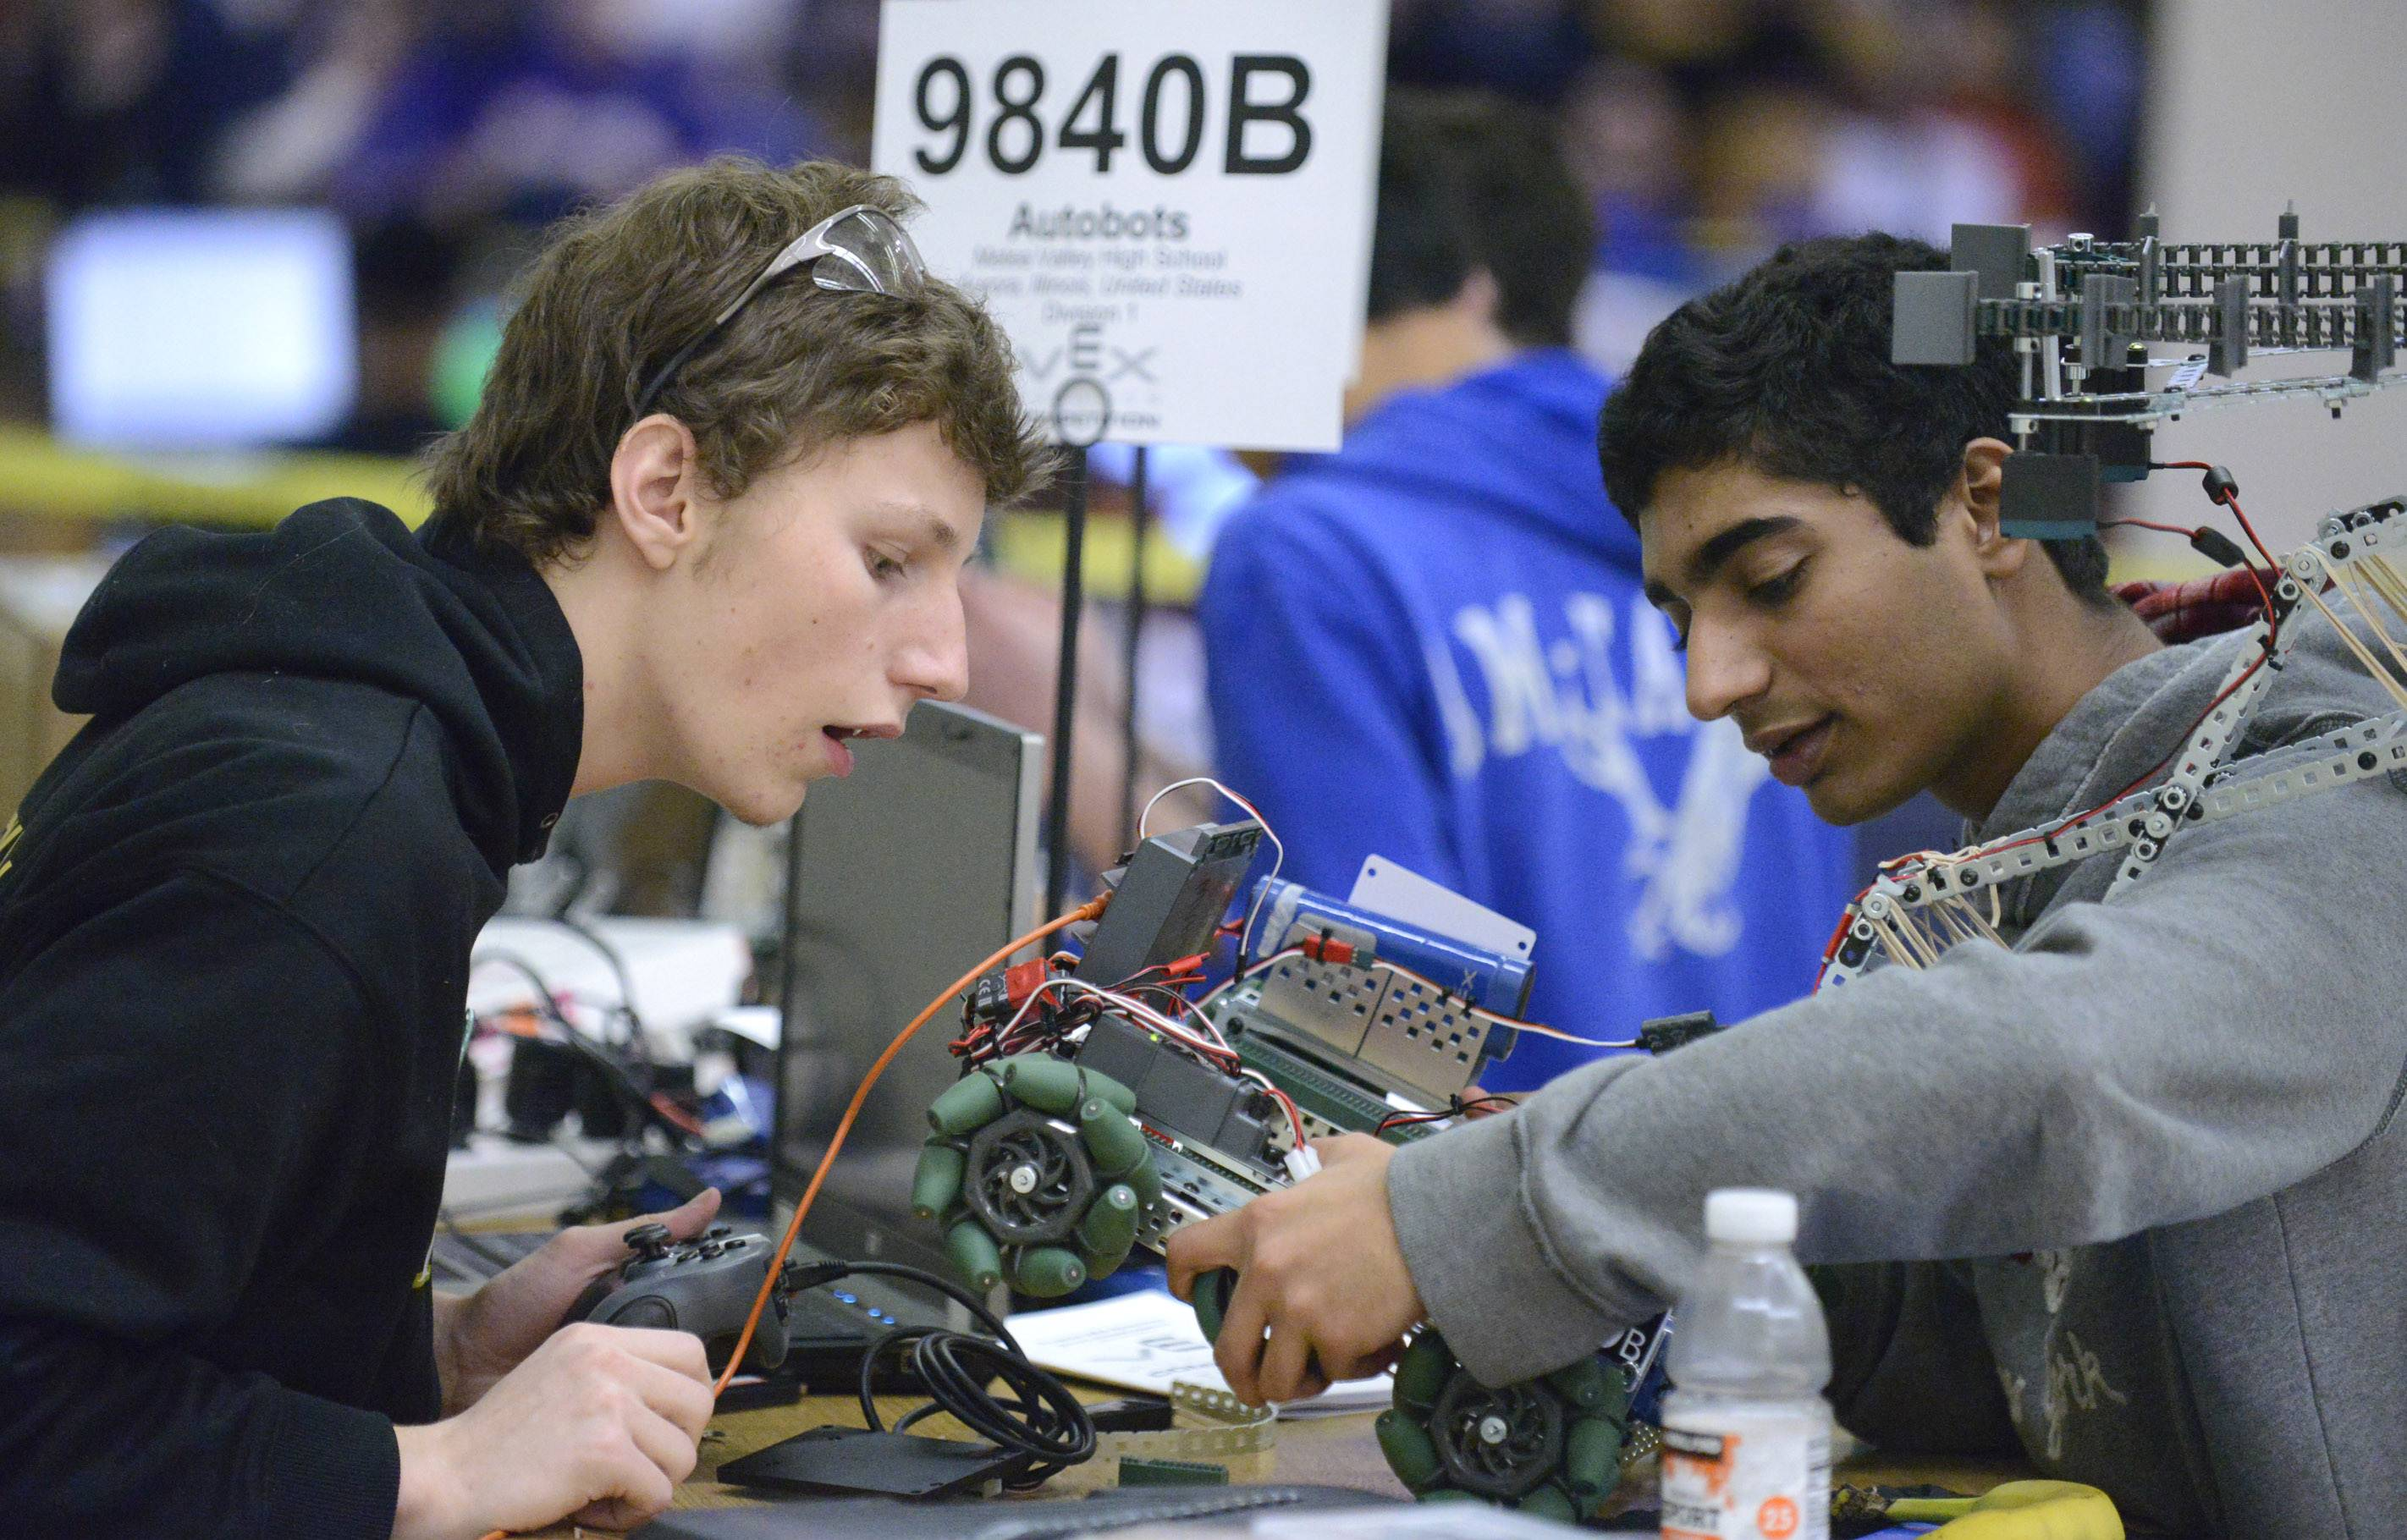 Ryan Luckinbill, 17, left, and Vignesh Sarathy, 18, of Metea Valley High School's Autobots robotics team, work on their robot before the start of the Illinois VEX Robotics state championship at Batavia Middle School on Saturday. This is the third time their team, comprised of eight students, has competed in the event.